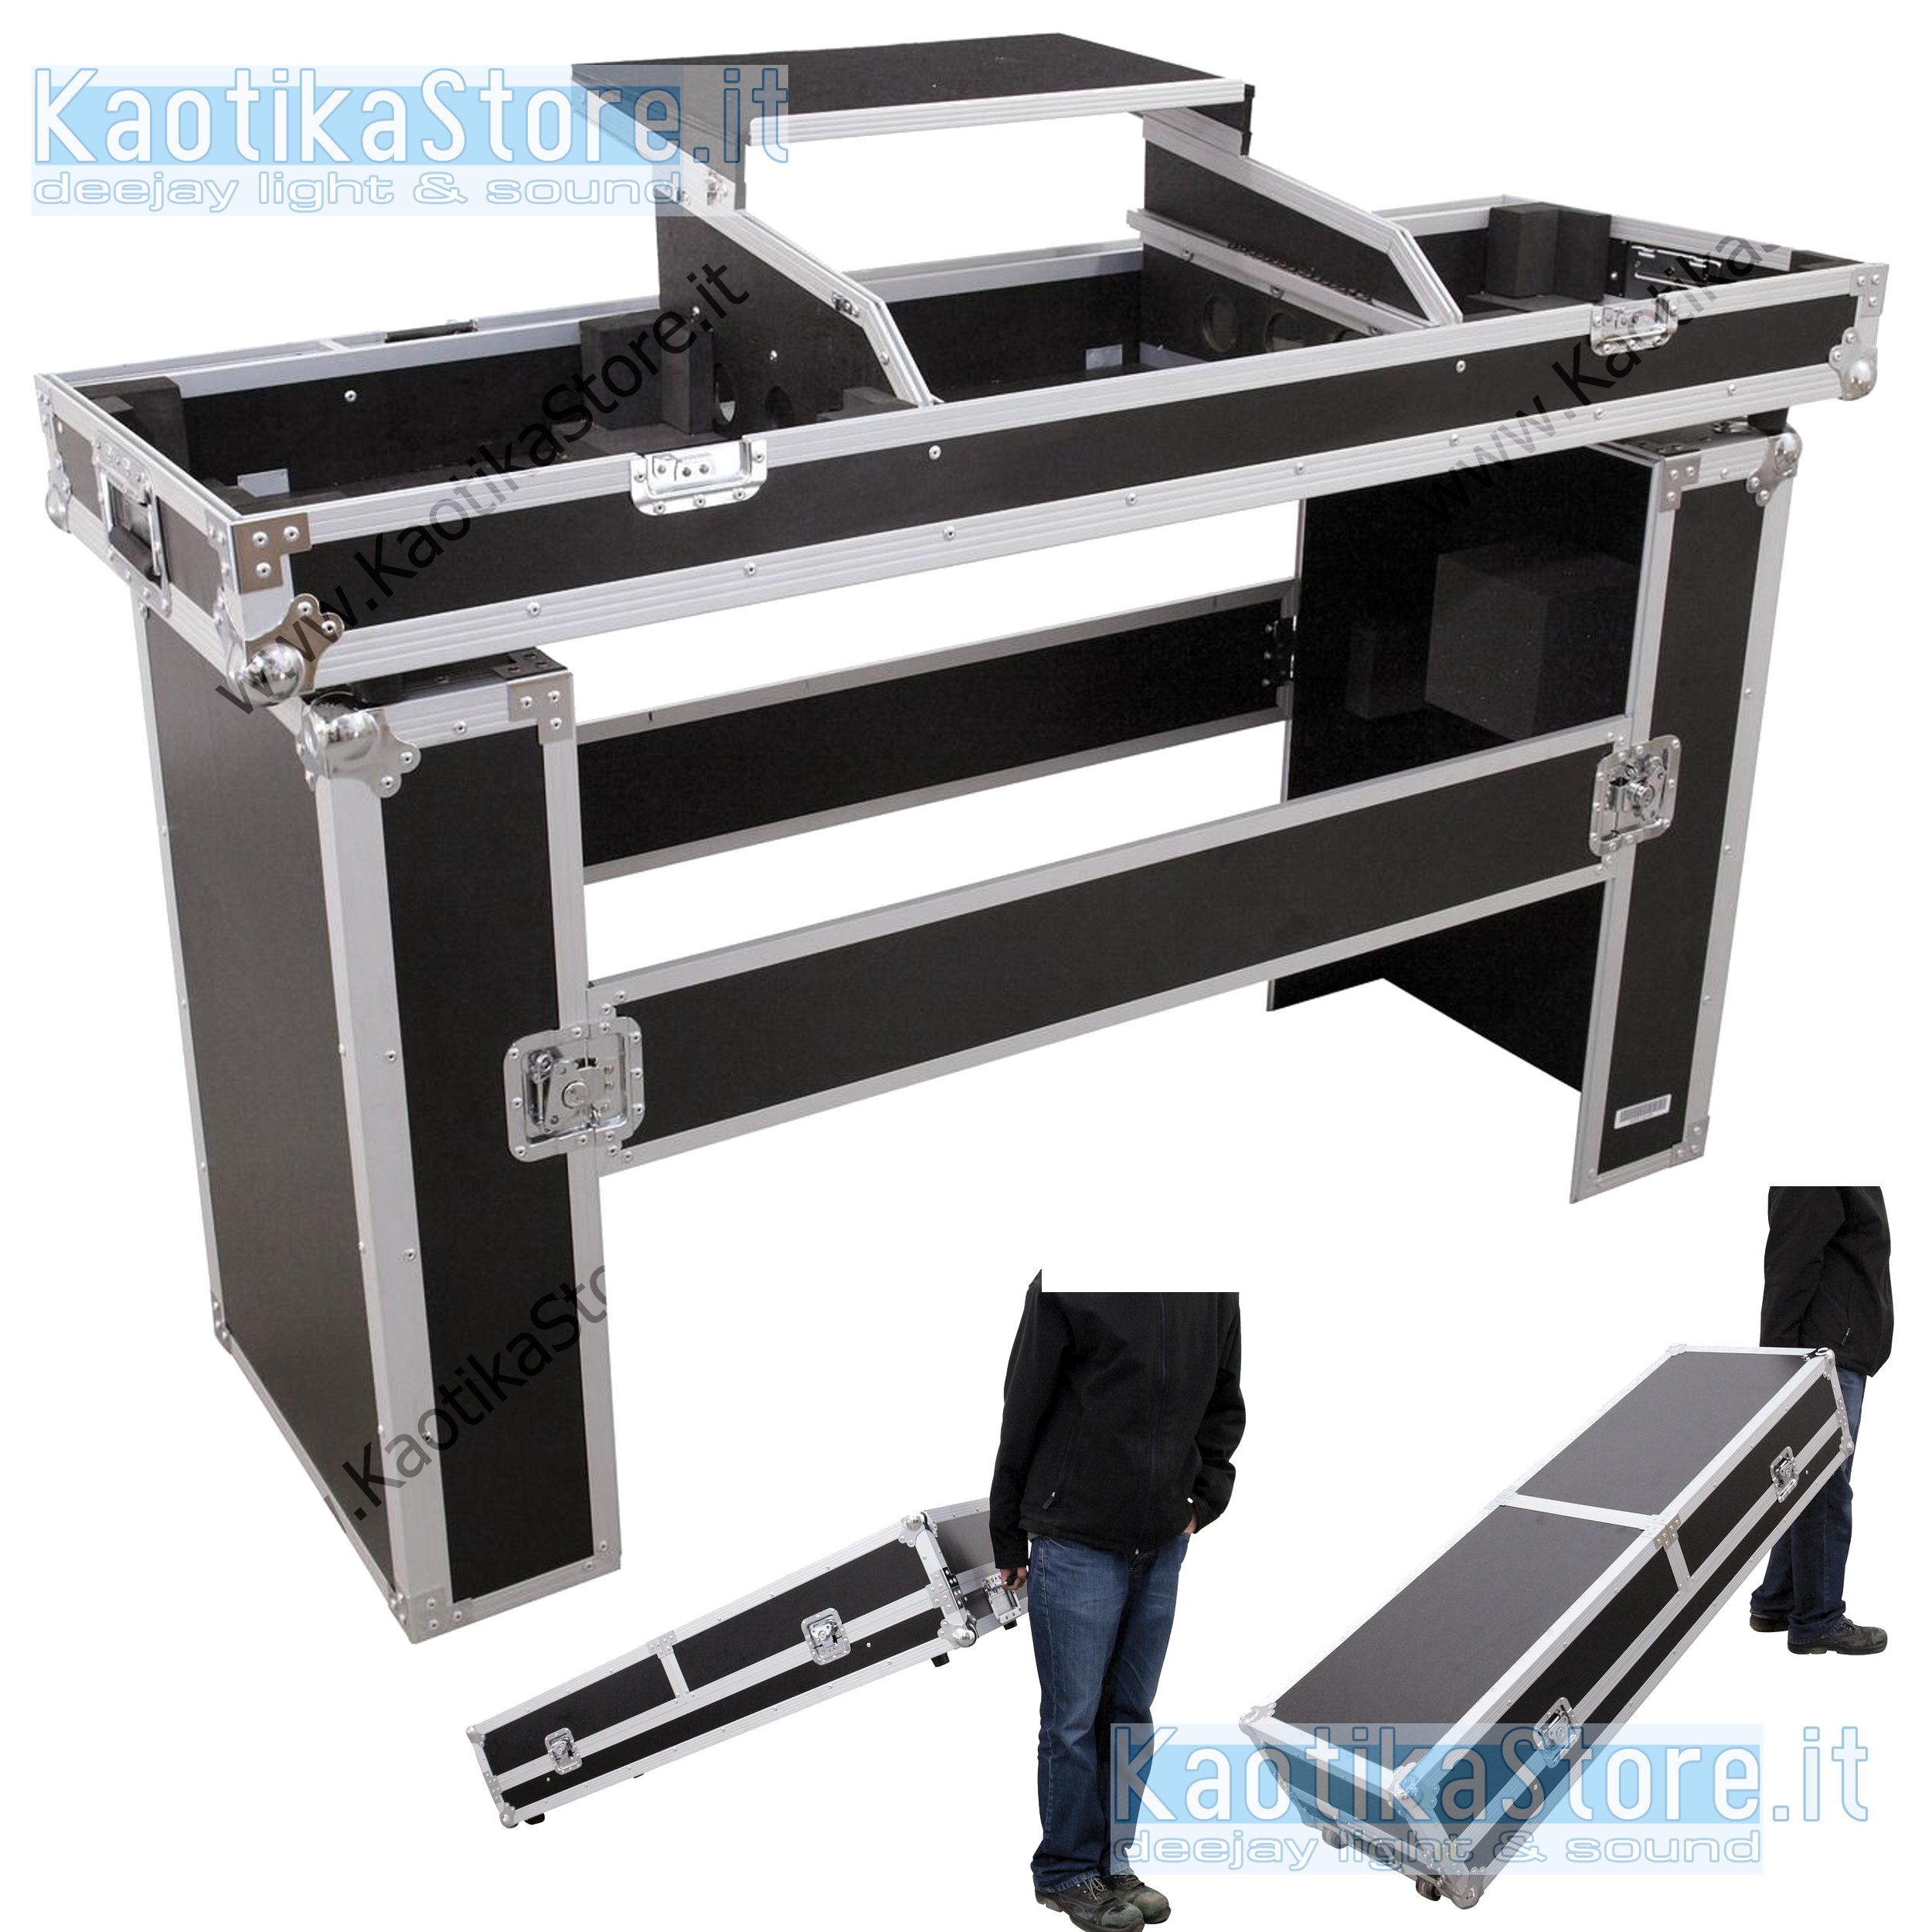 flightcase mobile dj valigia trasporto consolle cdj piatti. Black Bedroom Furniture Sets. Home Design Ideas